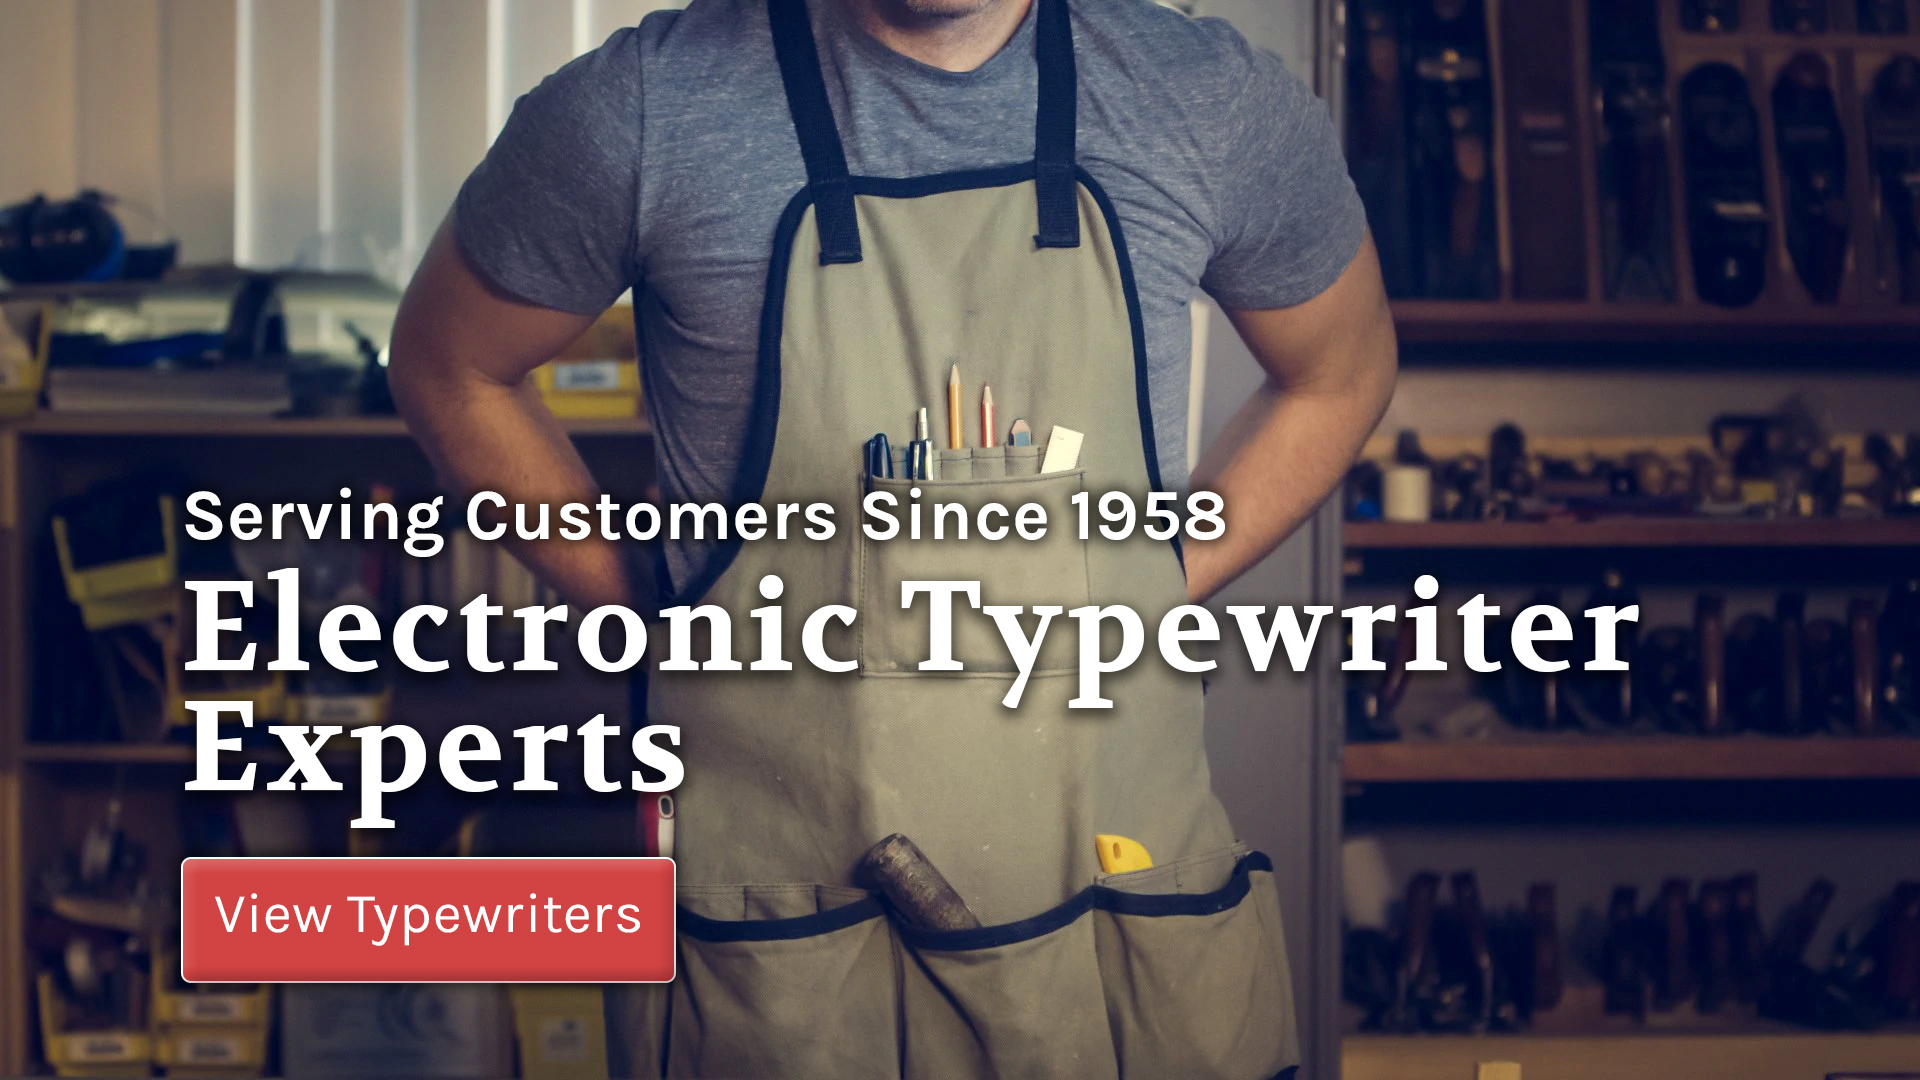 Electronic Typewriter Experts Serving Customers Since 1958